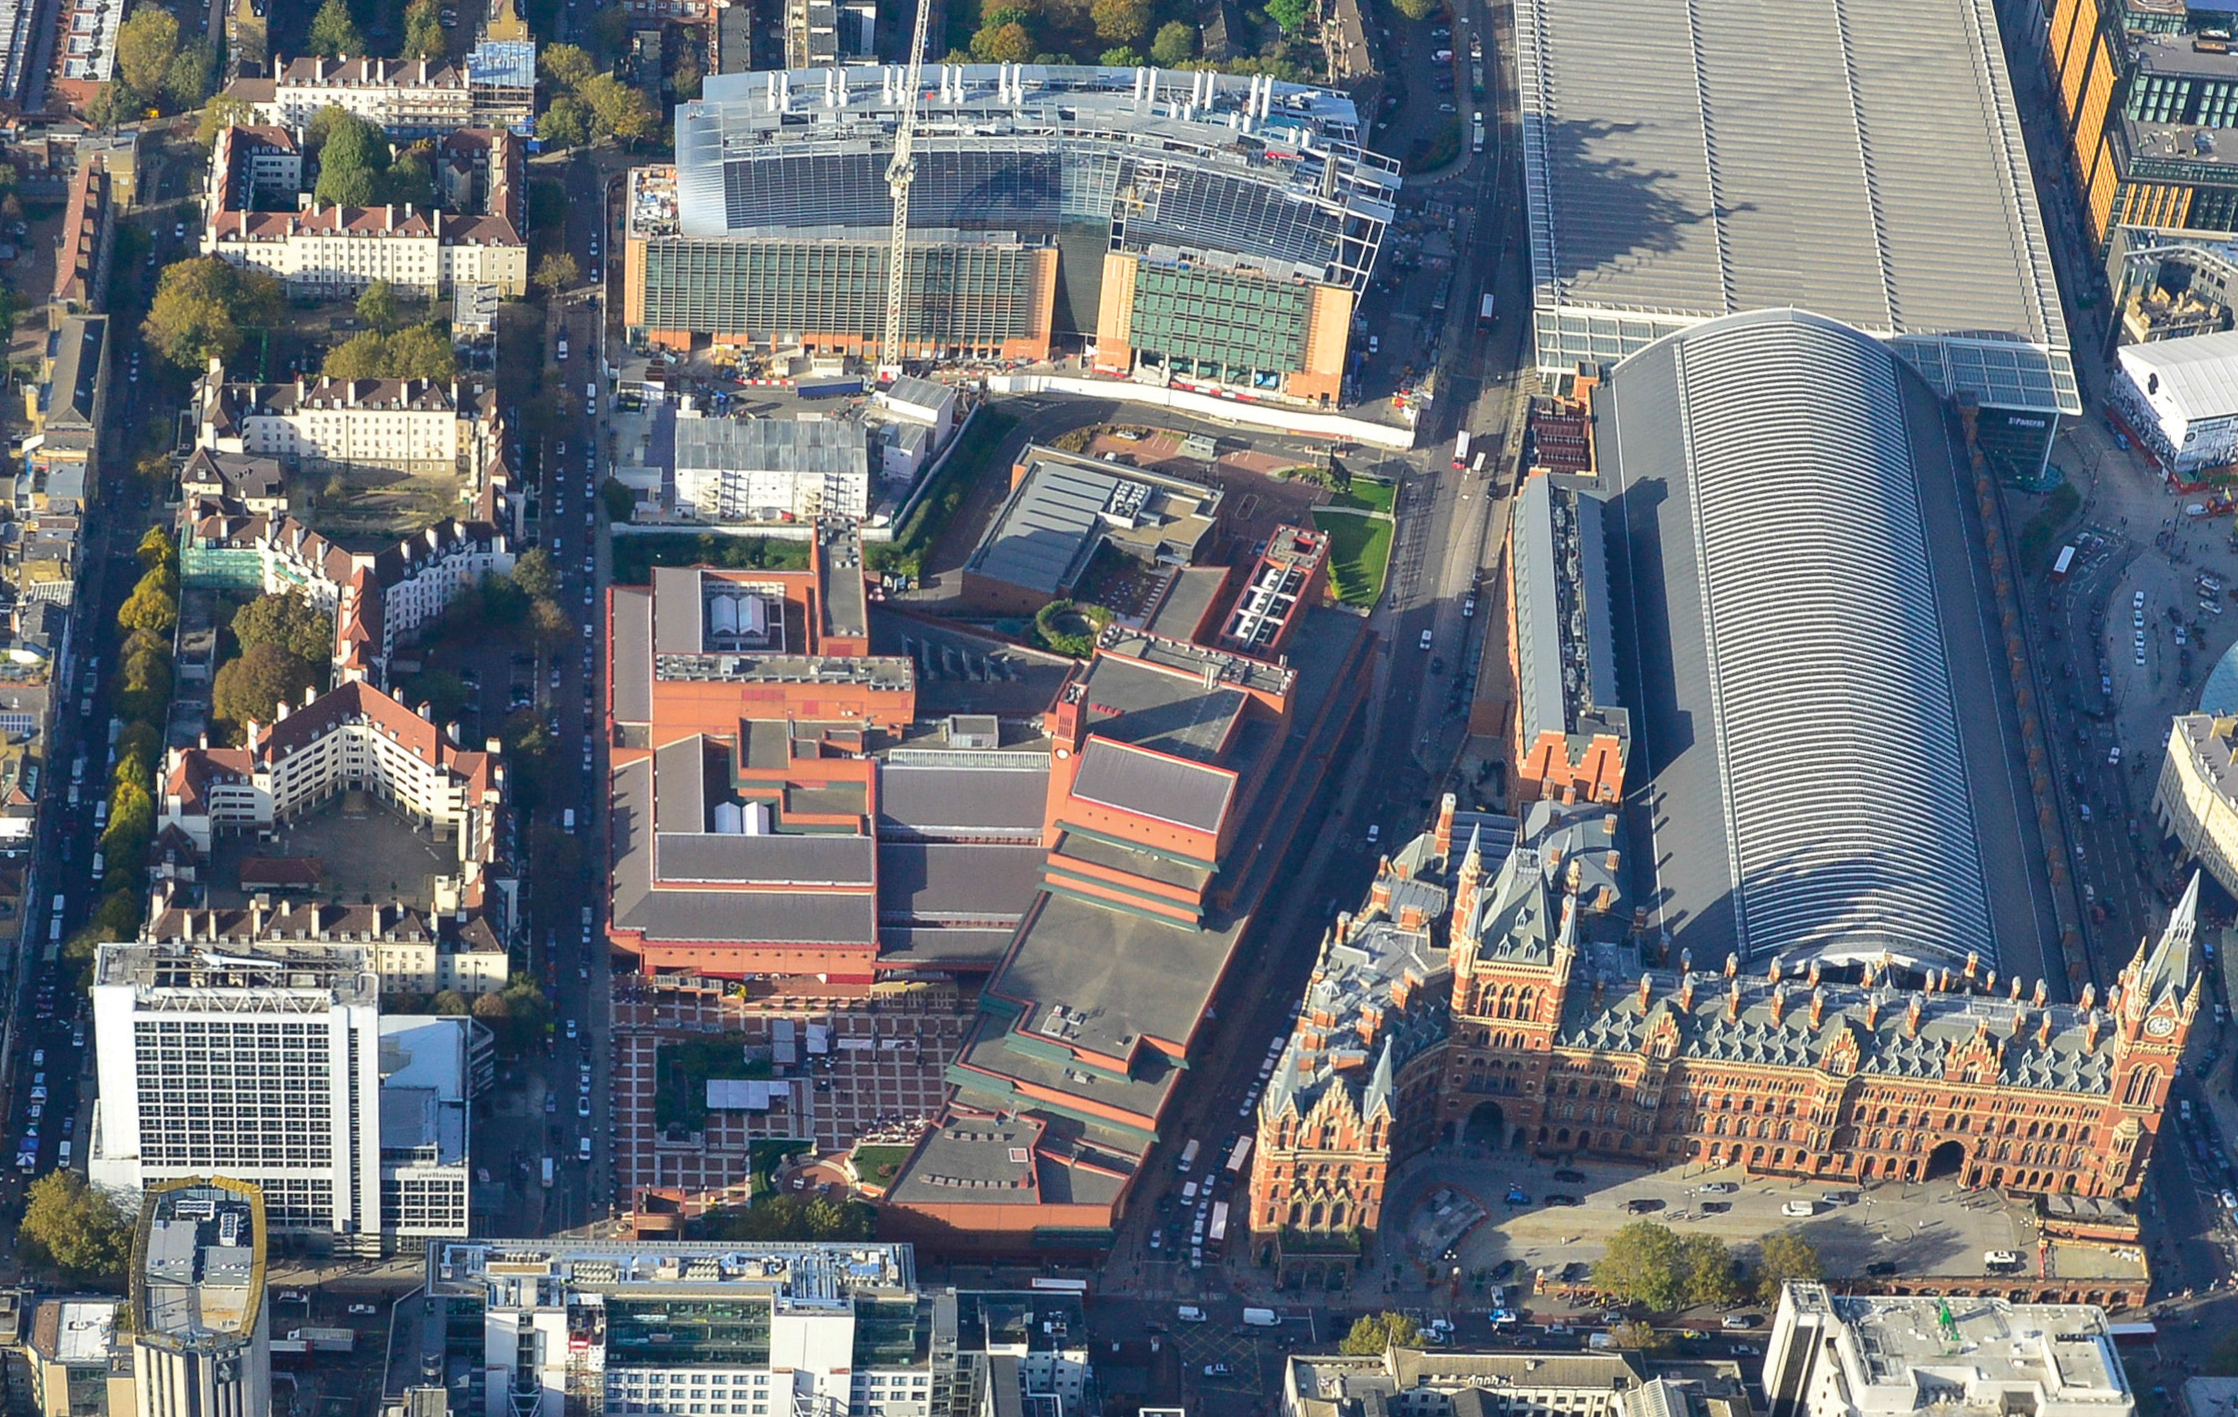 British Library St Pancras surrounding area photo by Ian Hay